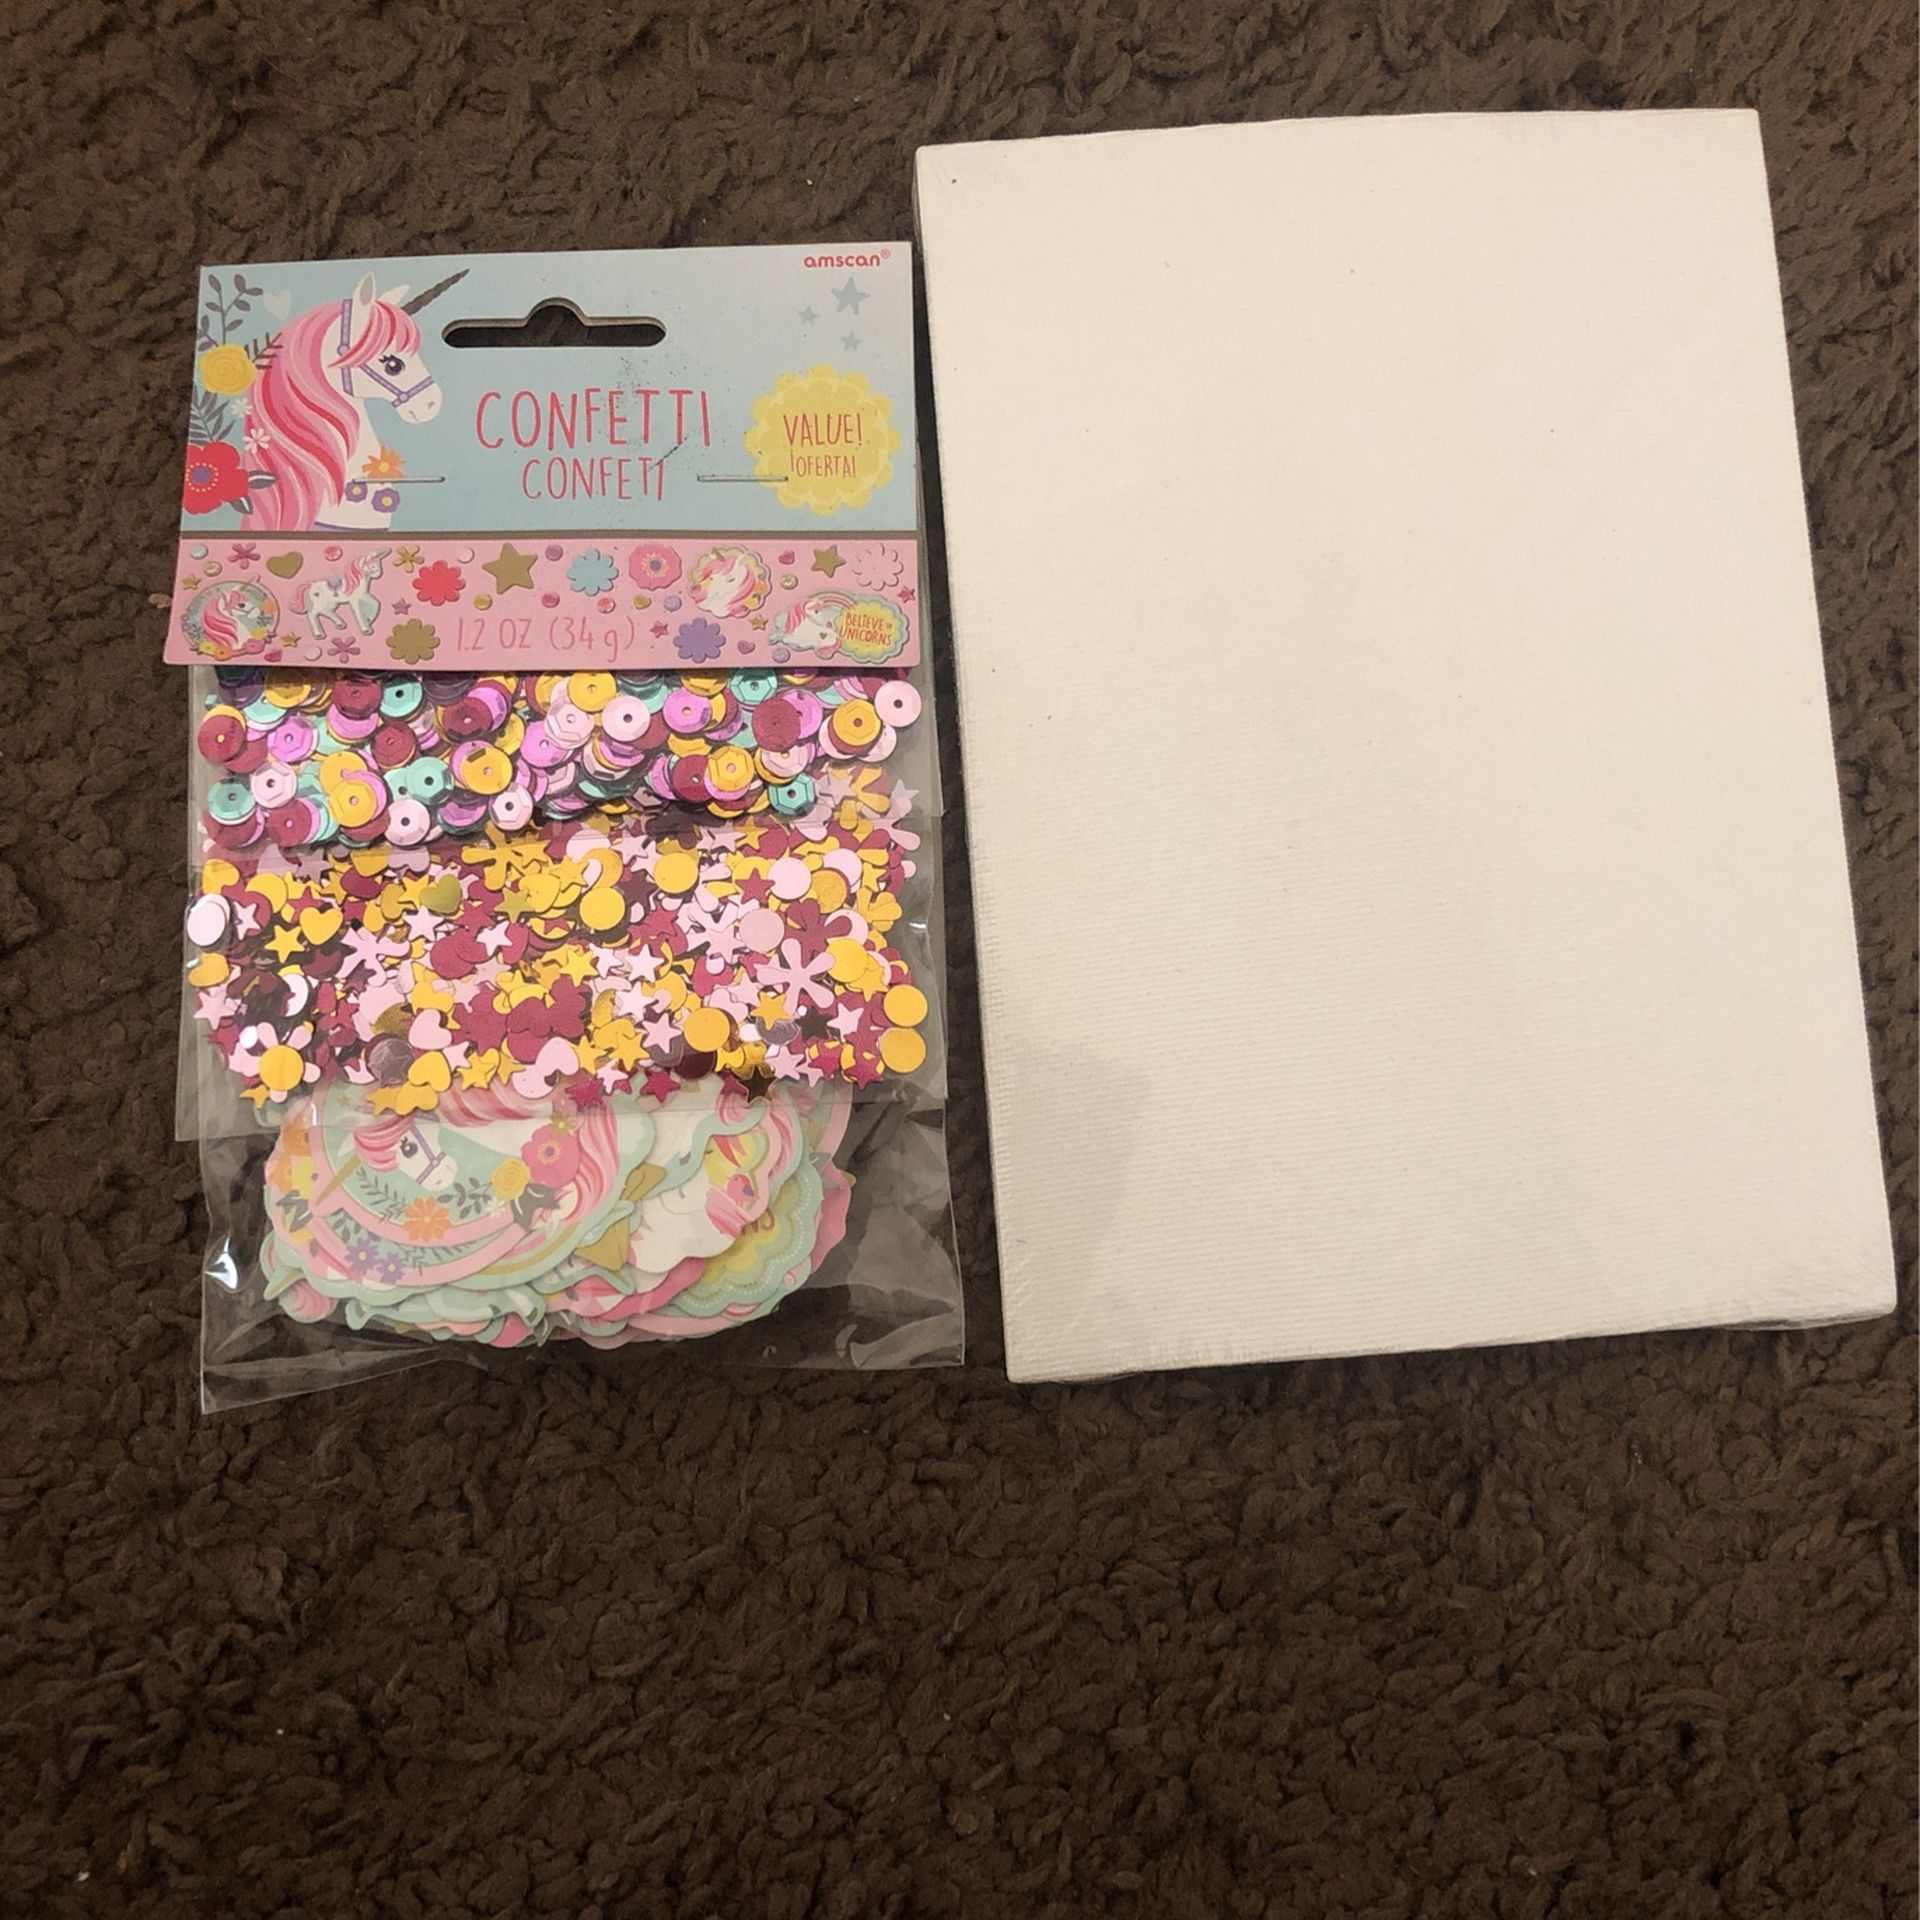 Three Diffrent Types Of Confetti And Mint Paint Canvass